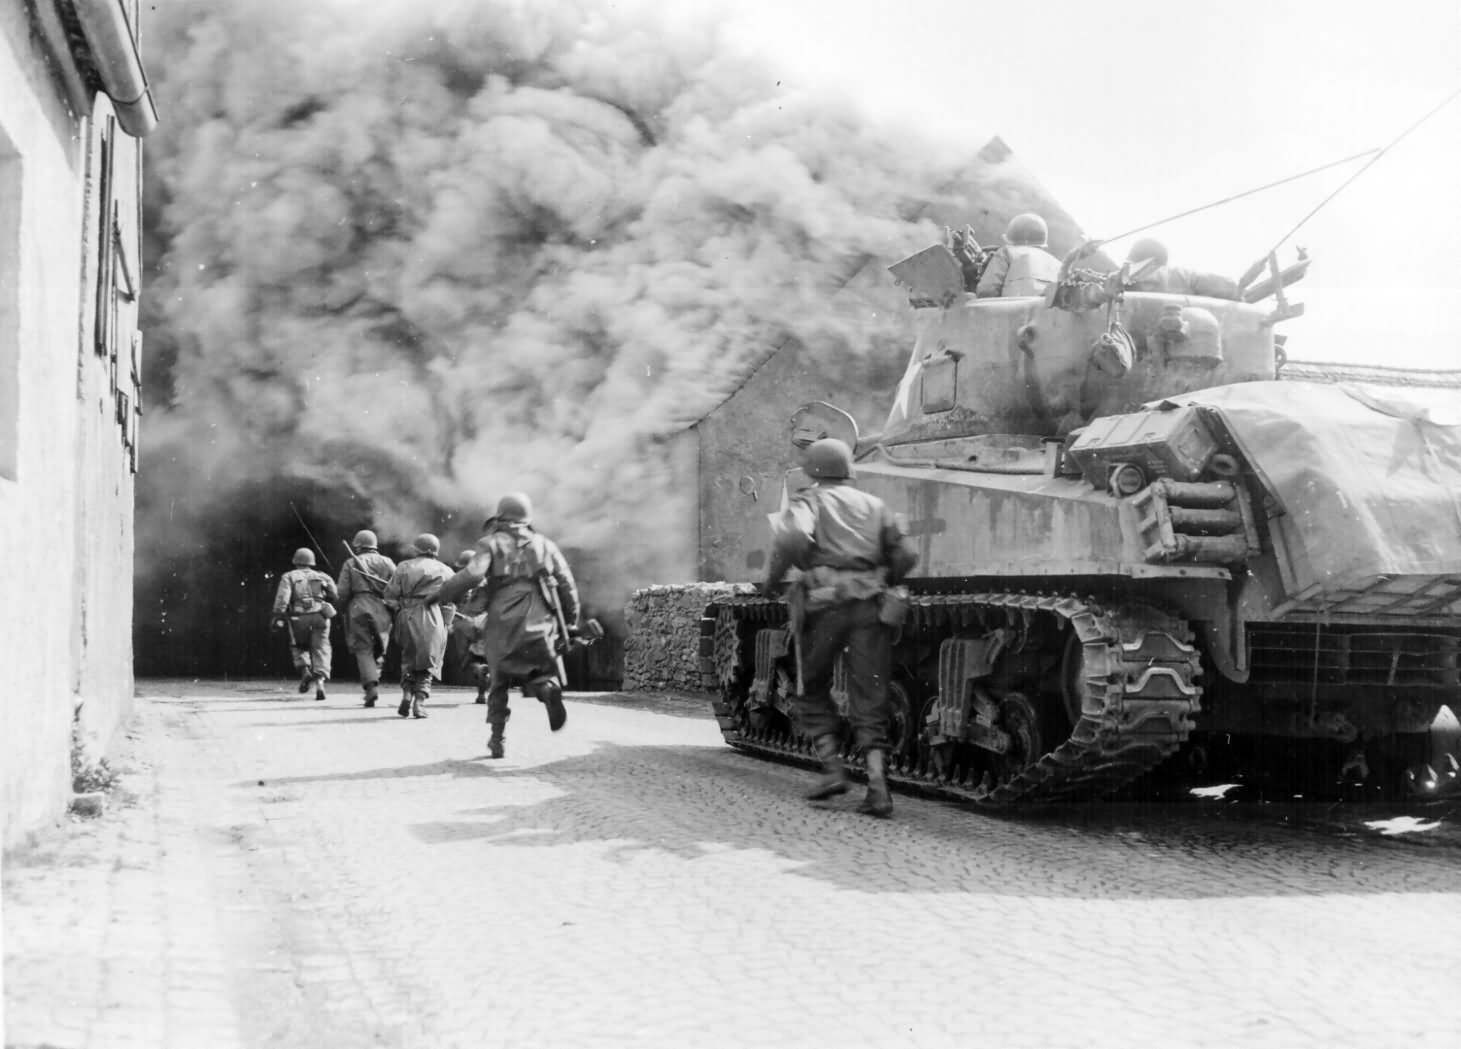 11th Armored Division Sherman in Wernberg, Germany